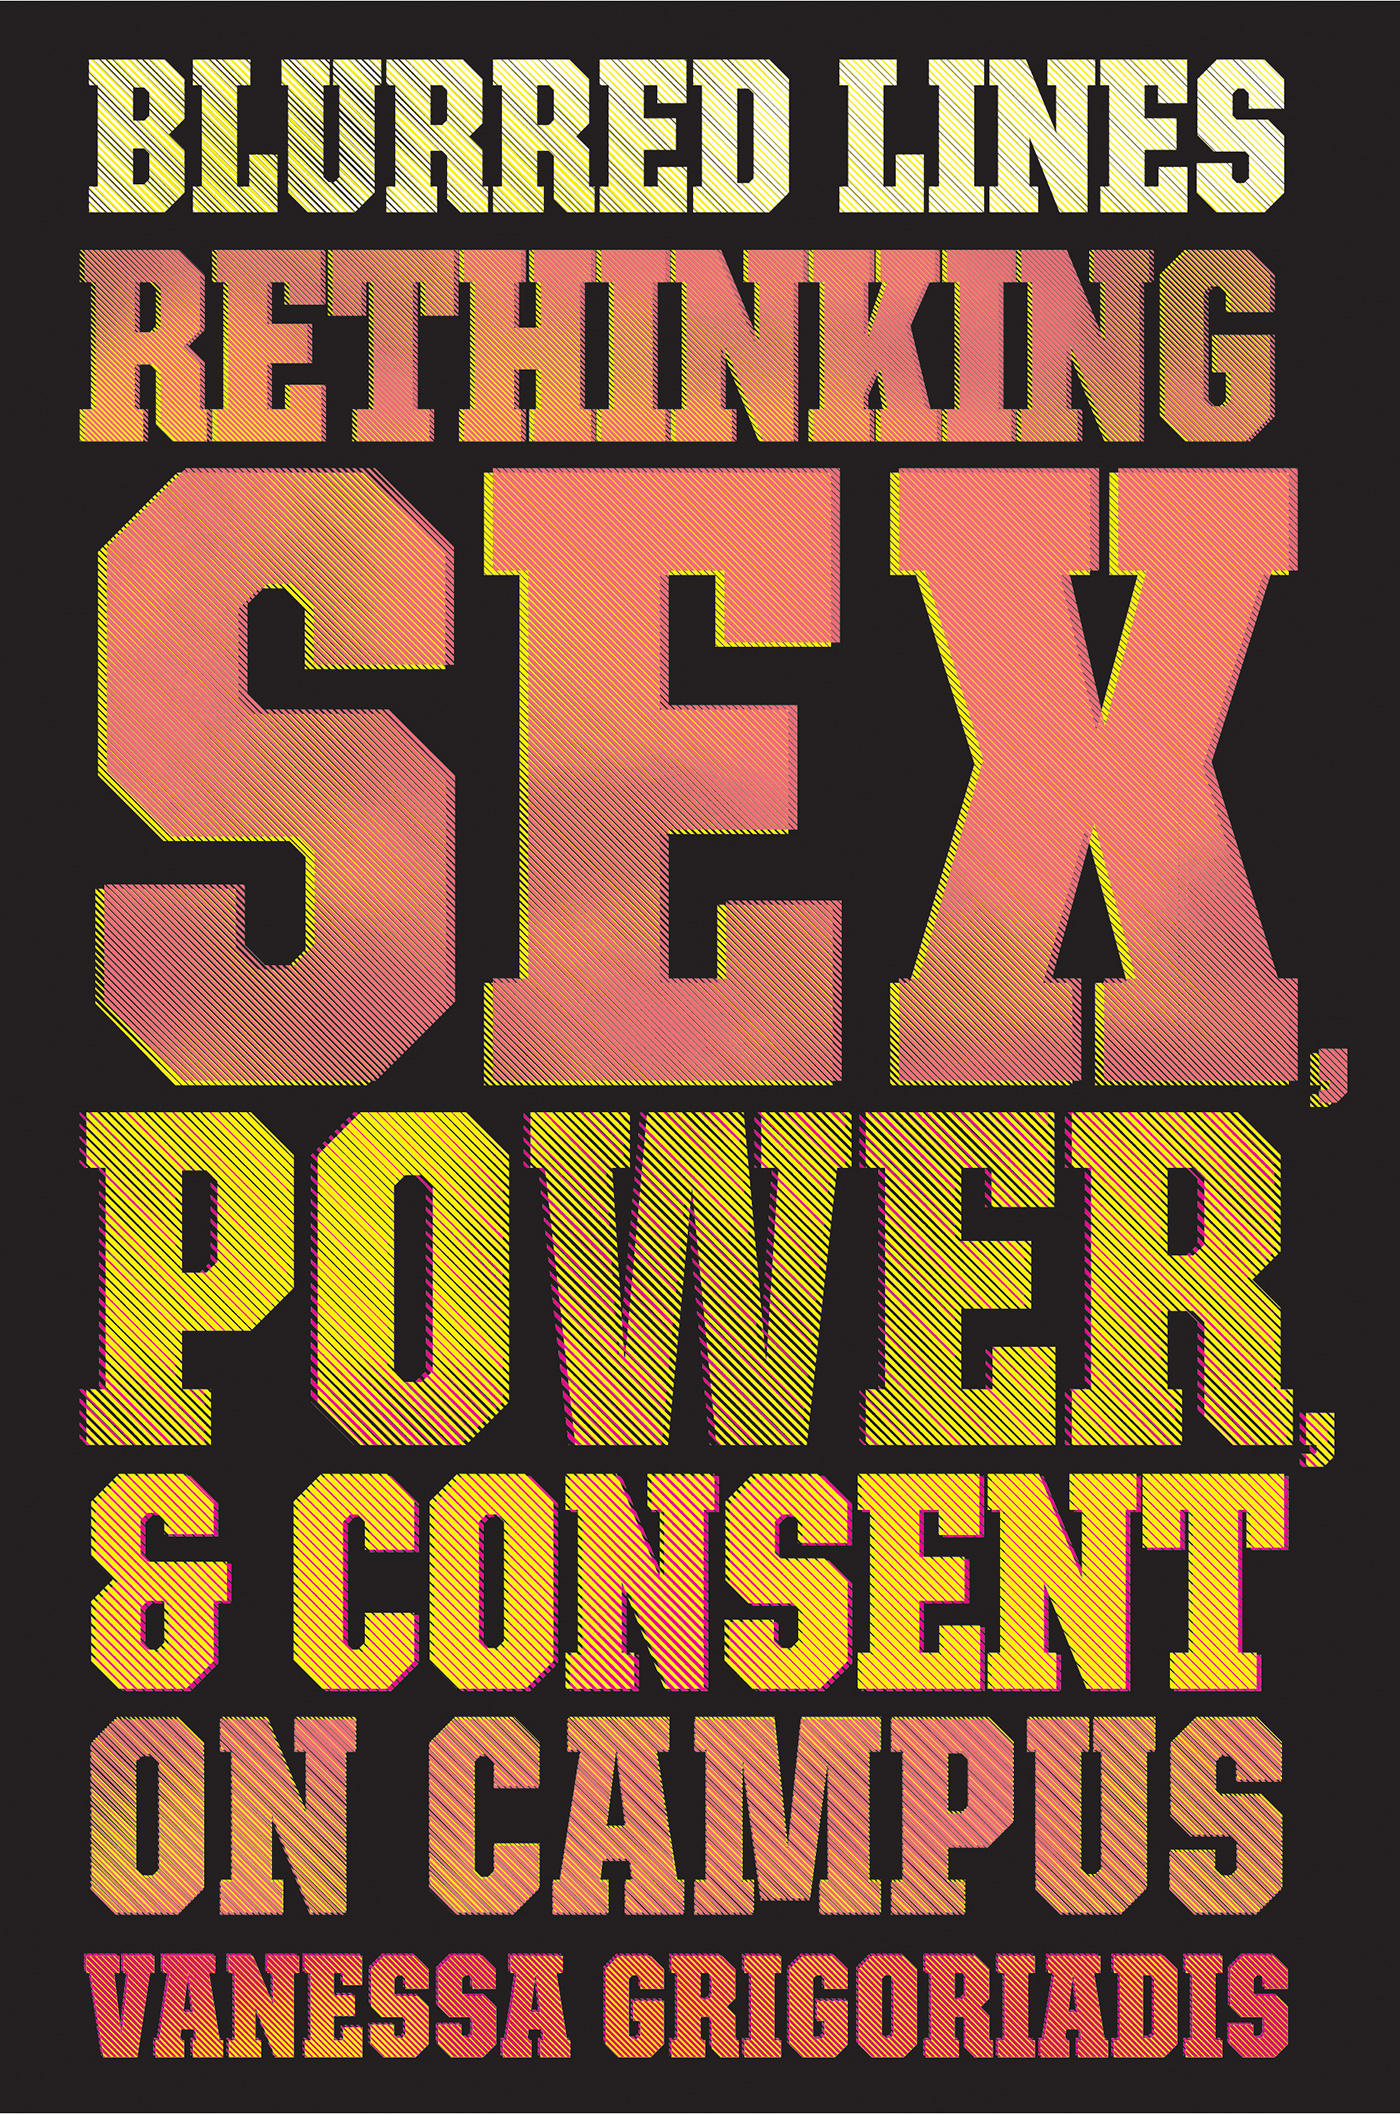 Hookup a player advice and consent